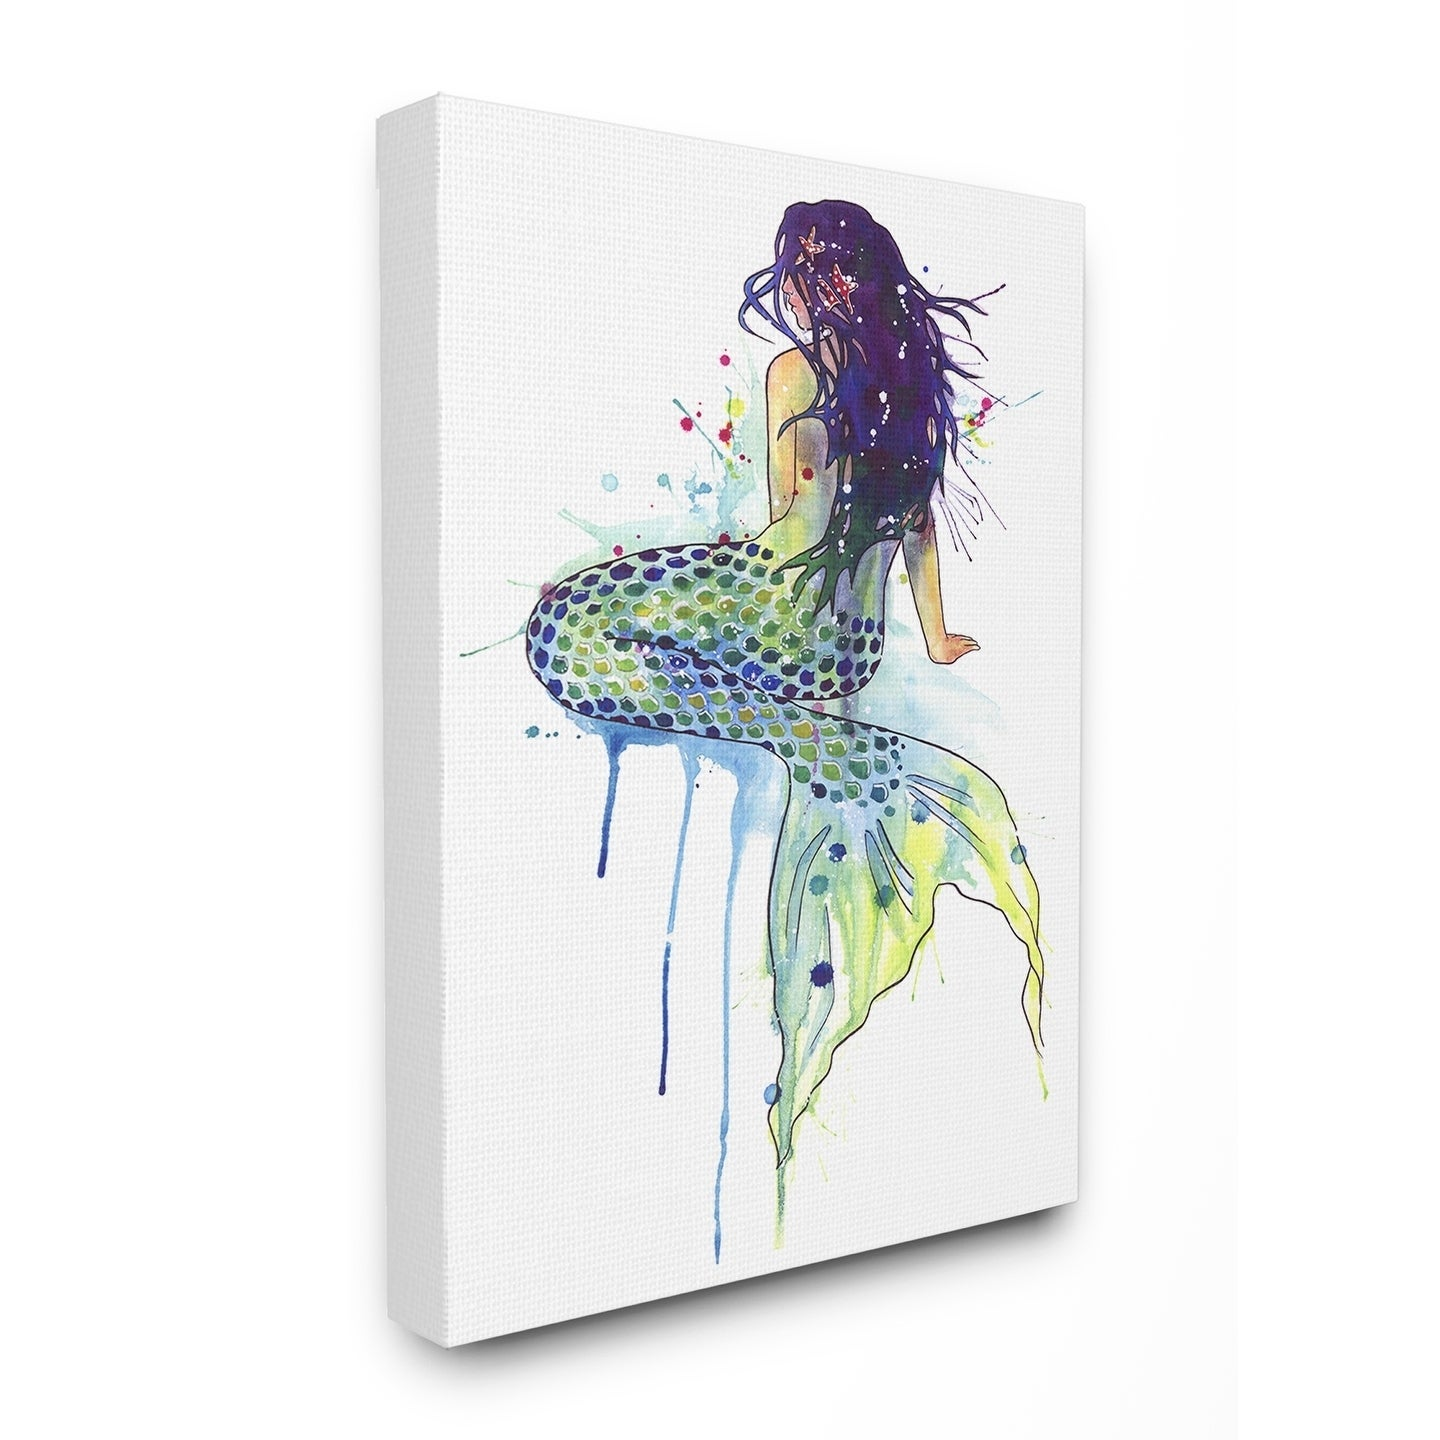 Multi-Color The Stupell Home Decor Dripping Watercolor Mermaid with Her Back Turned Wall Plaque Art 10 X 15